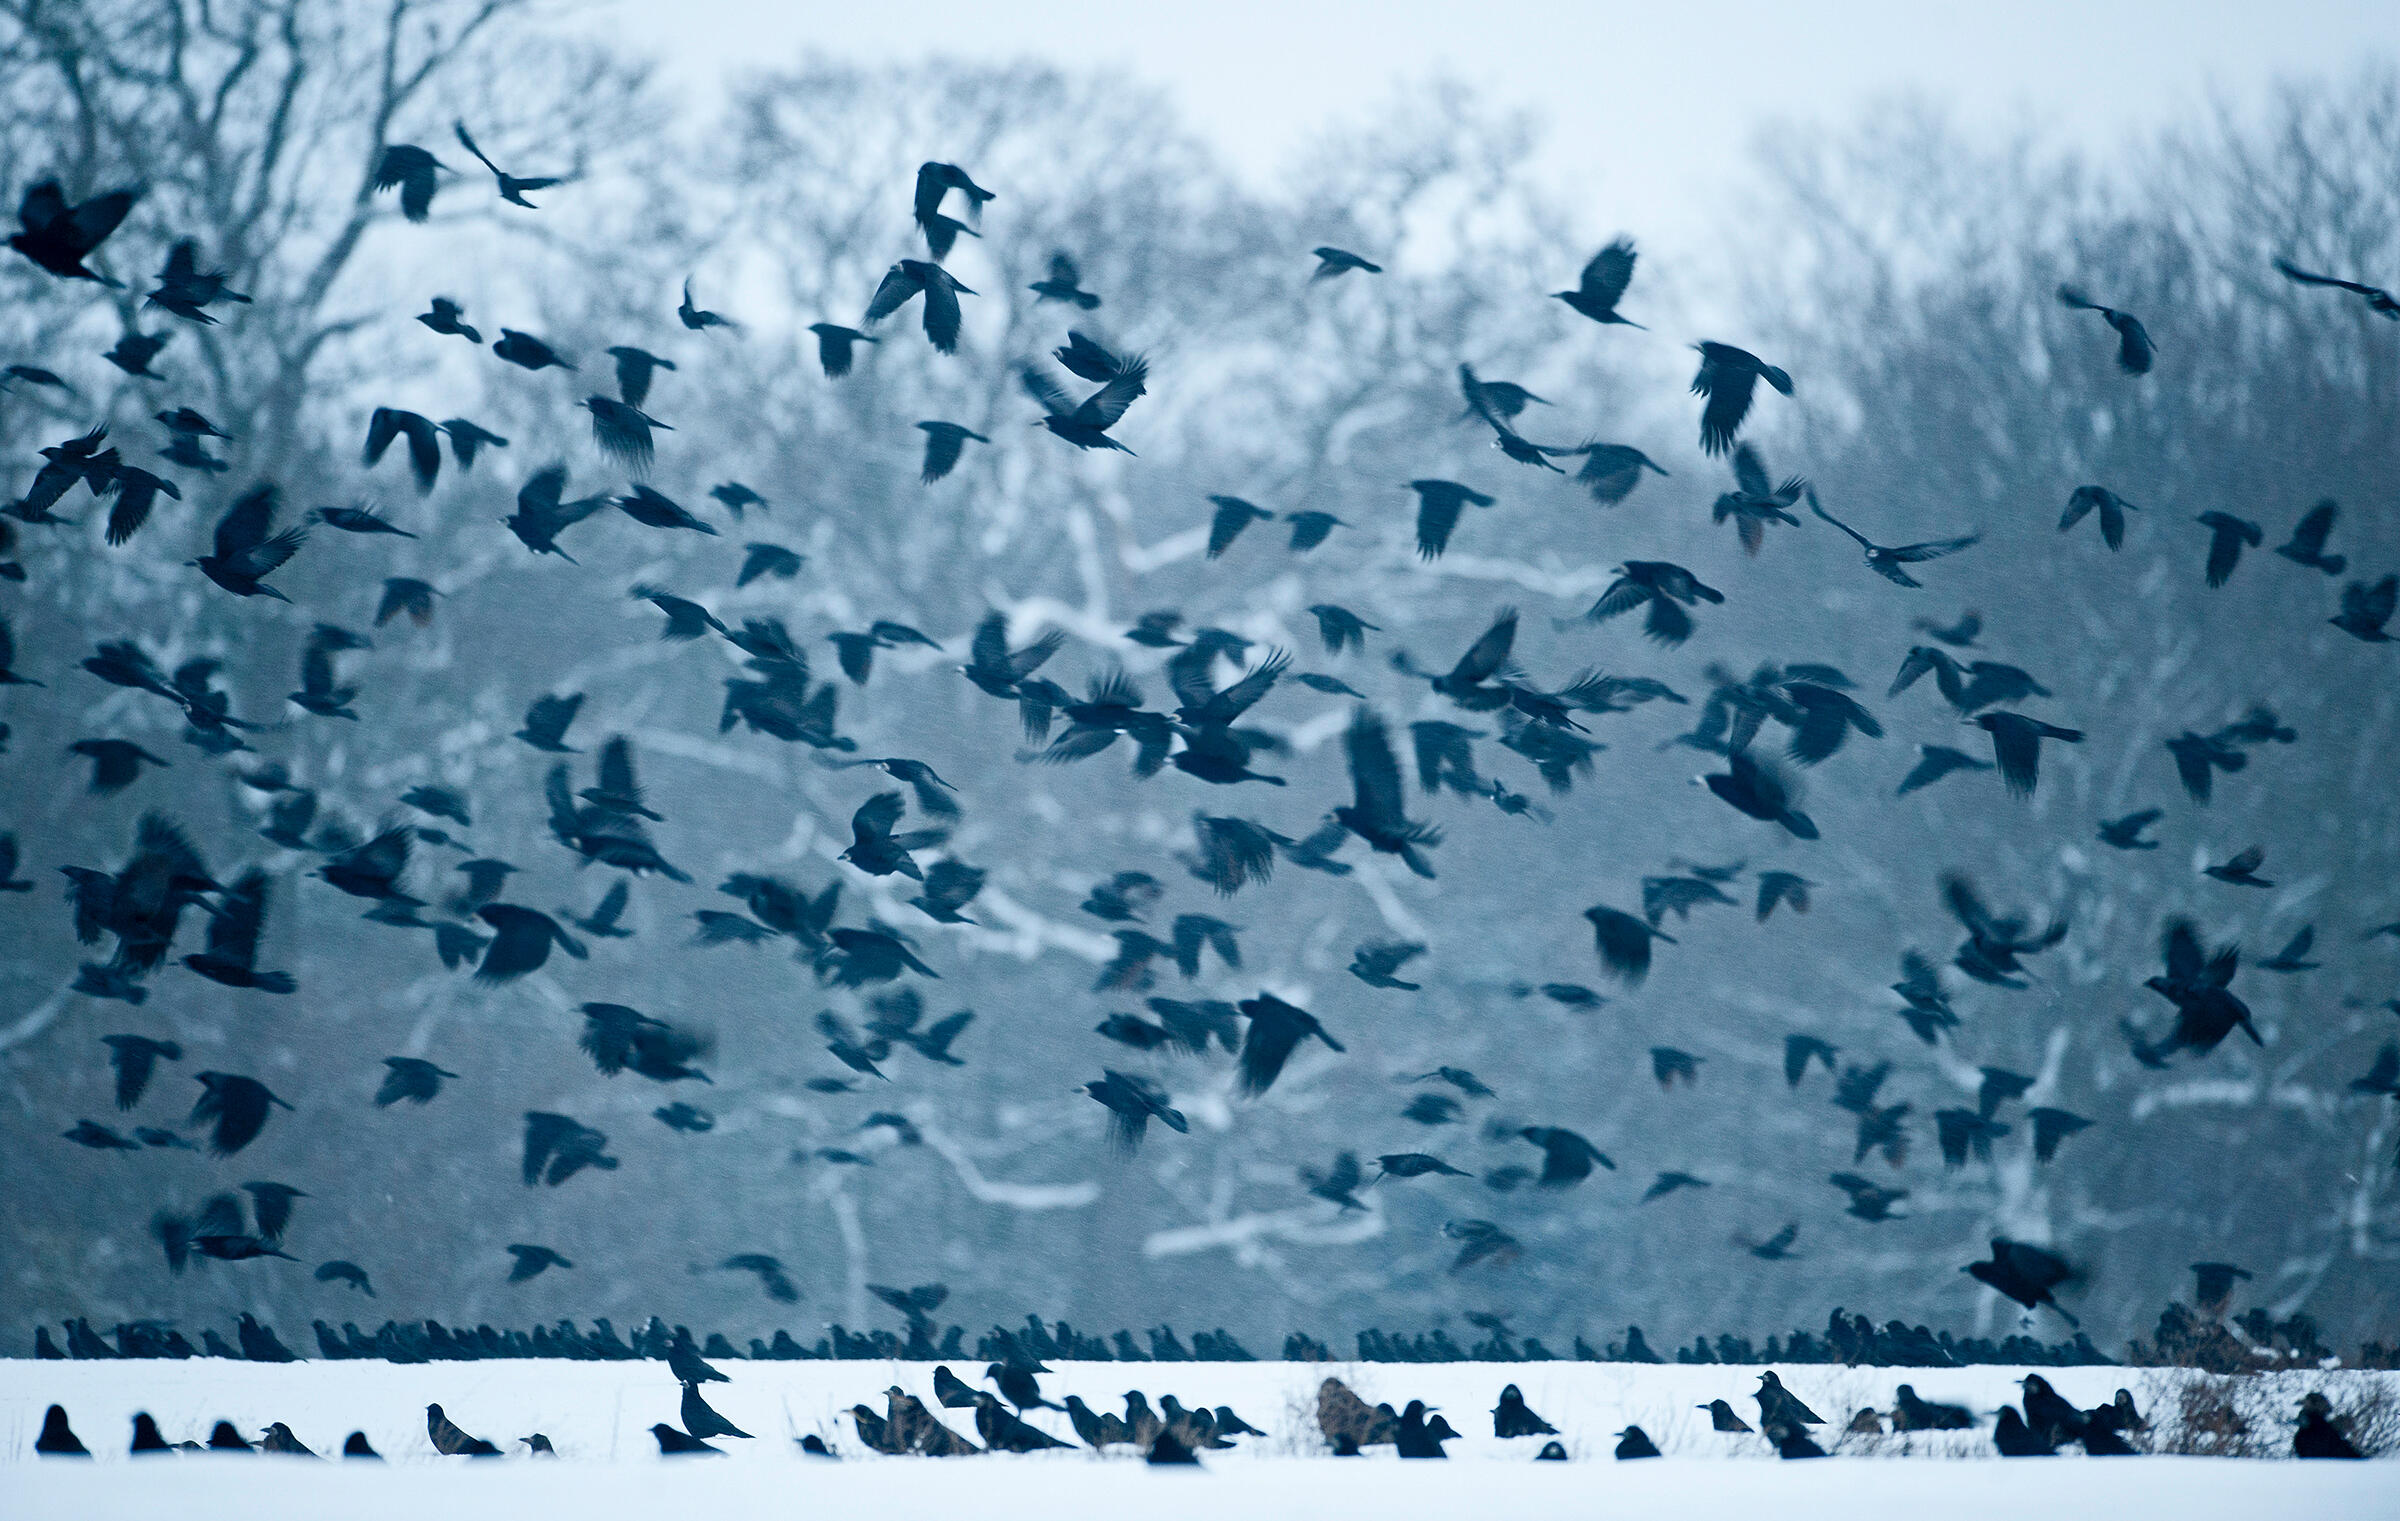 A group—not a murder— of Carrion Crows (and Rooks) in Norfolk, England. David Tipling/Alamy